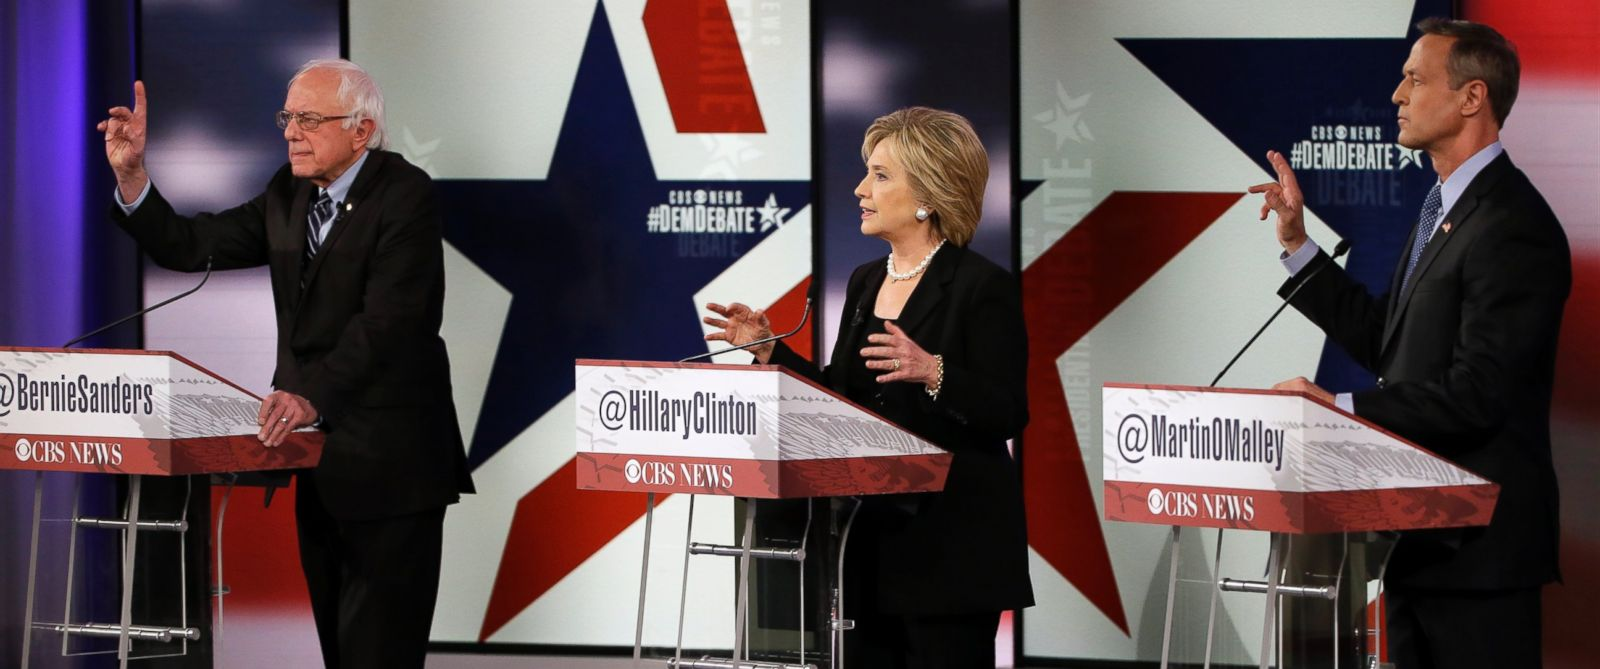 PHOTO: Democratic presidential candidates Bernie Sanders, left, Hillary Rodham Clinton and Martin OMalley participate in a Democratic presidential primary debate, Nov. 14, 2015, in Des Moines, Iowa.